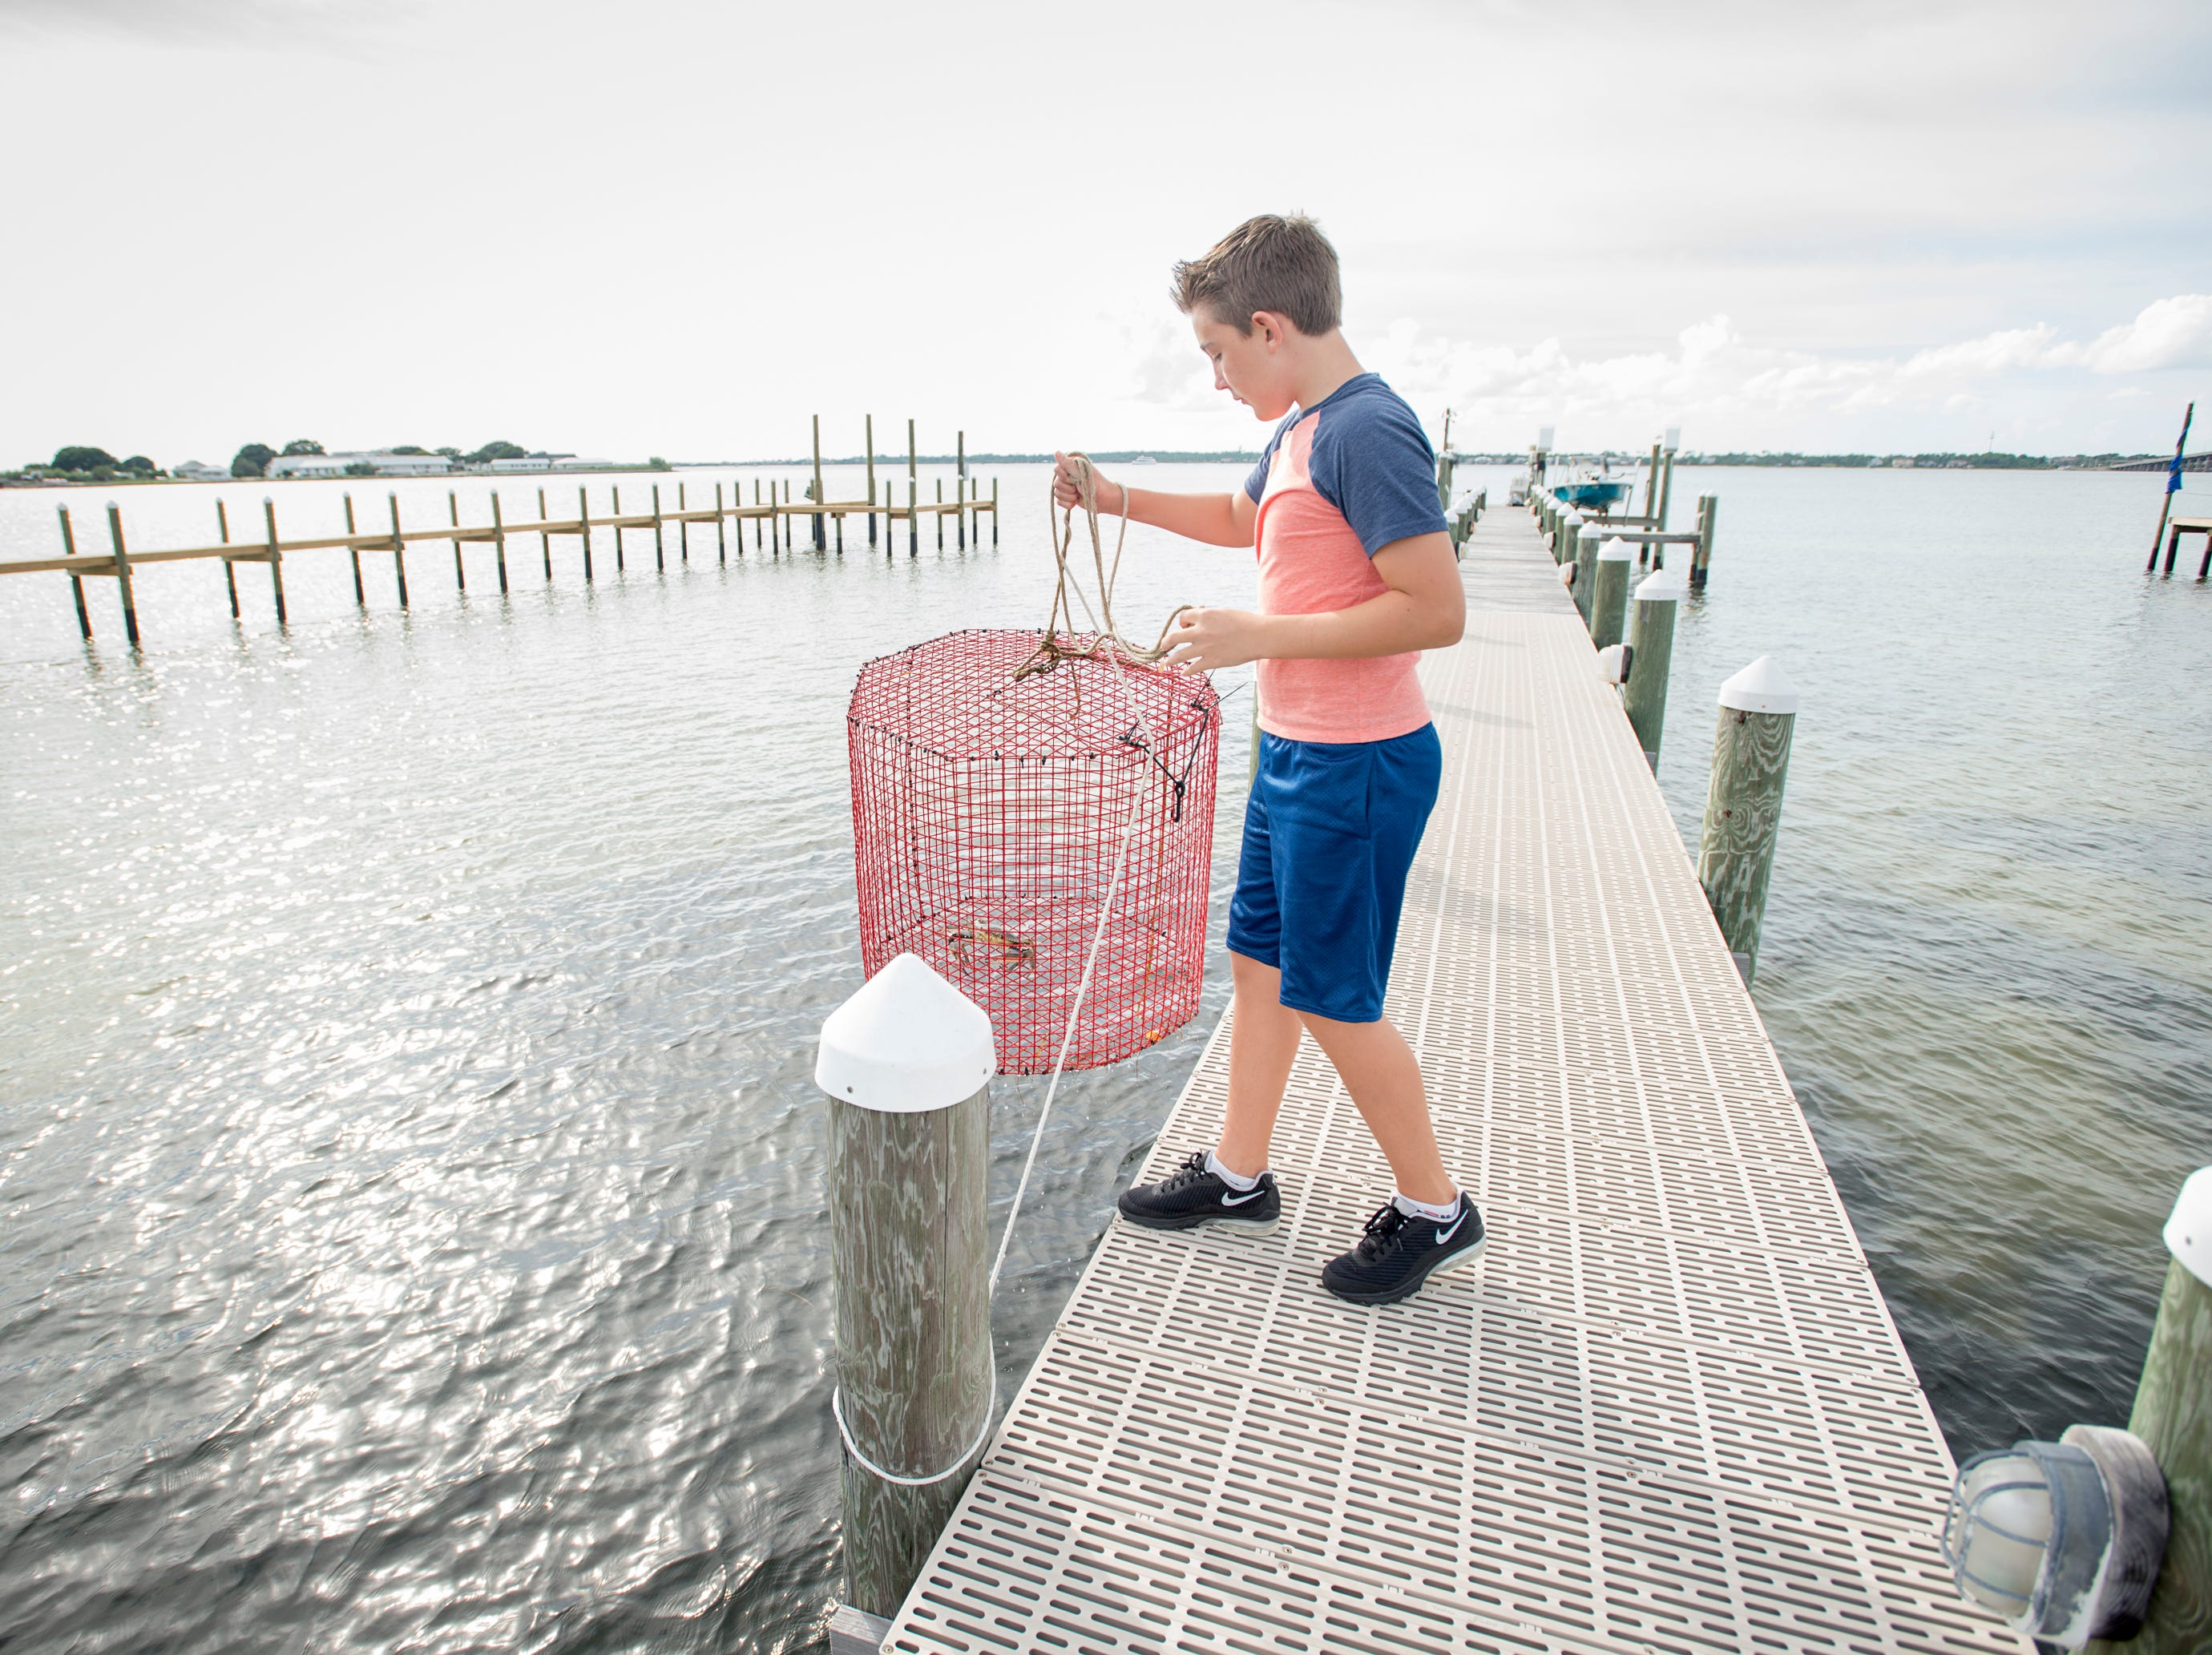 Ben Kalb, 12, pulls up the trap with the three-clawed blue crab that he recently caught behind his home on Little Sabine Bay in Pensacola.   Thursday, August 9, 2018.